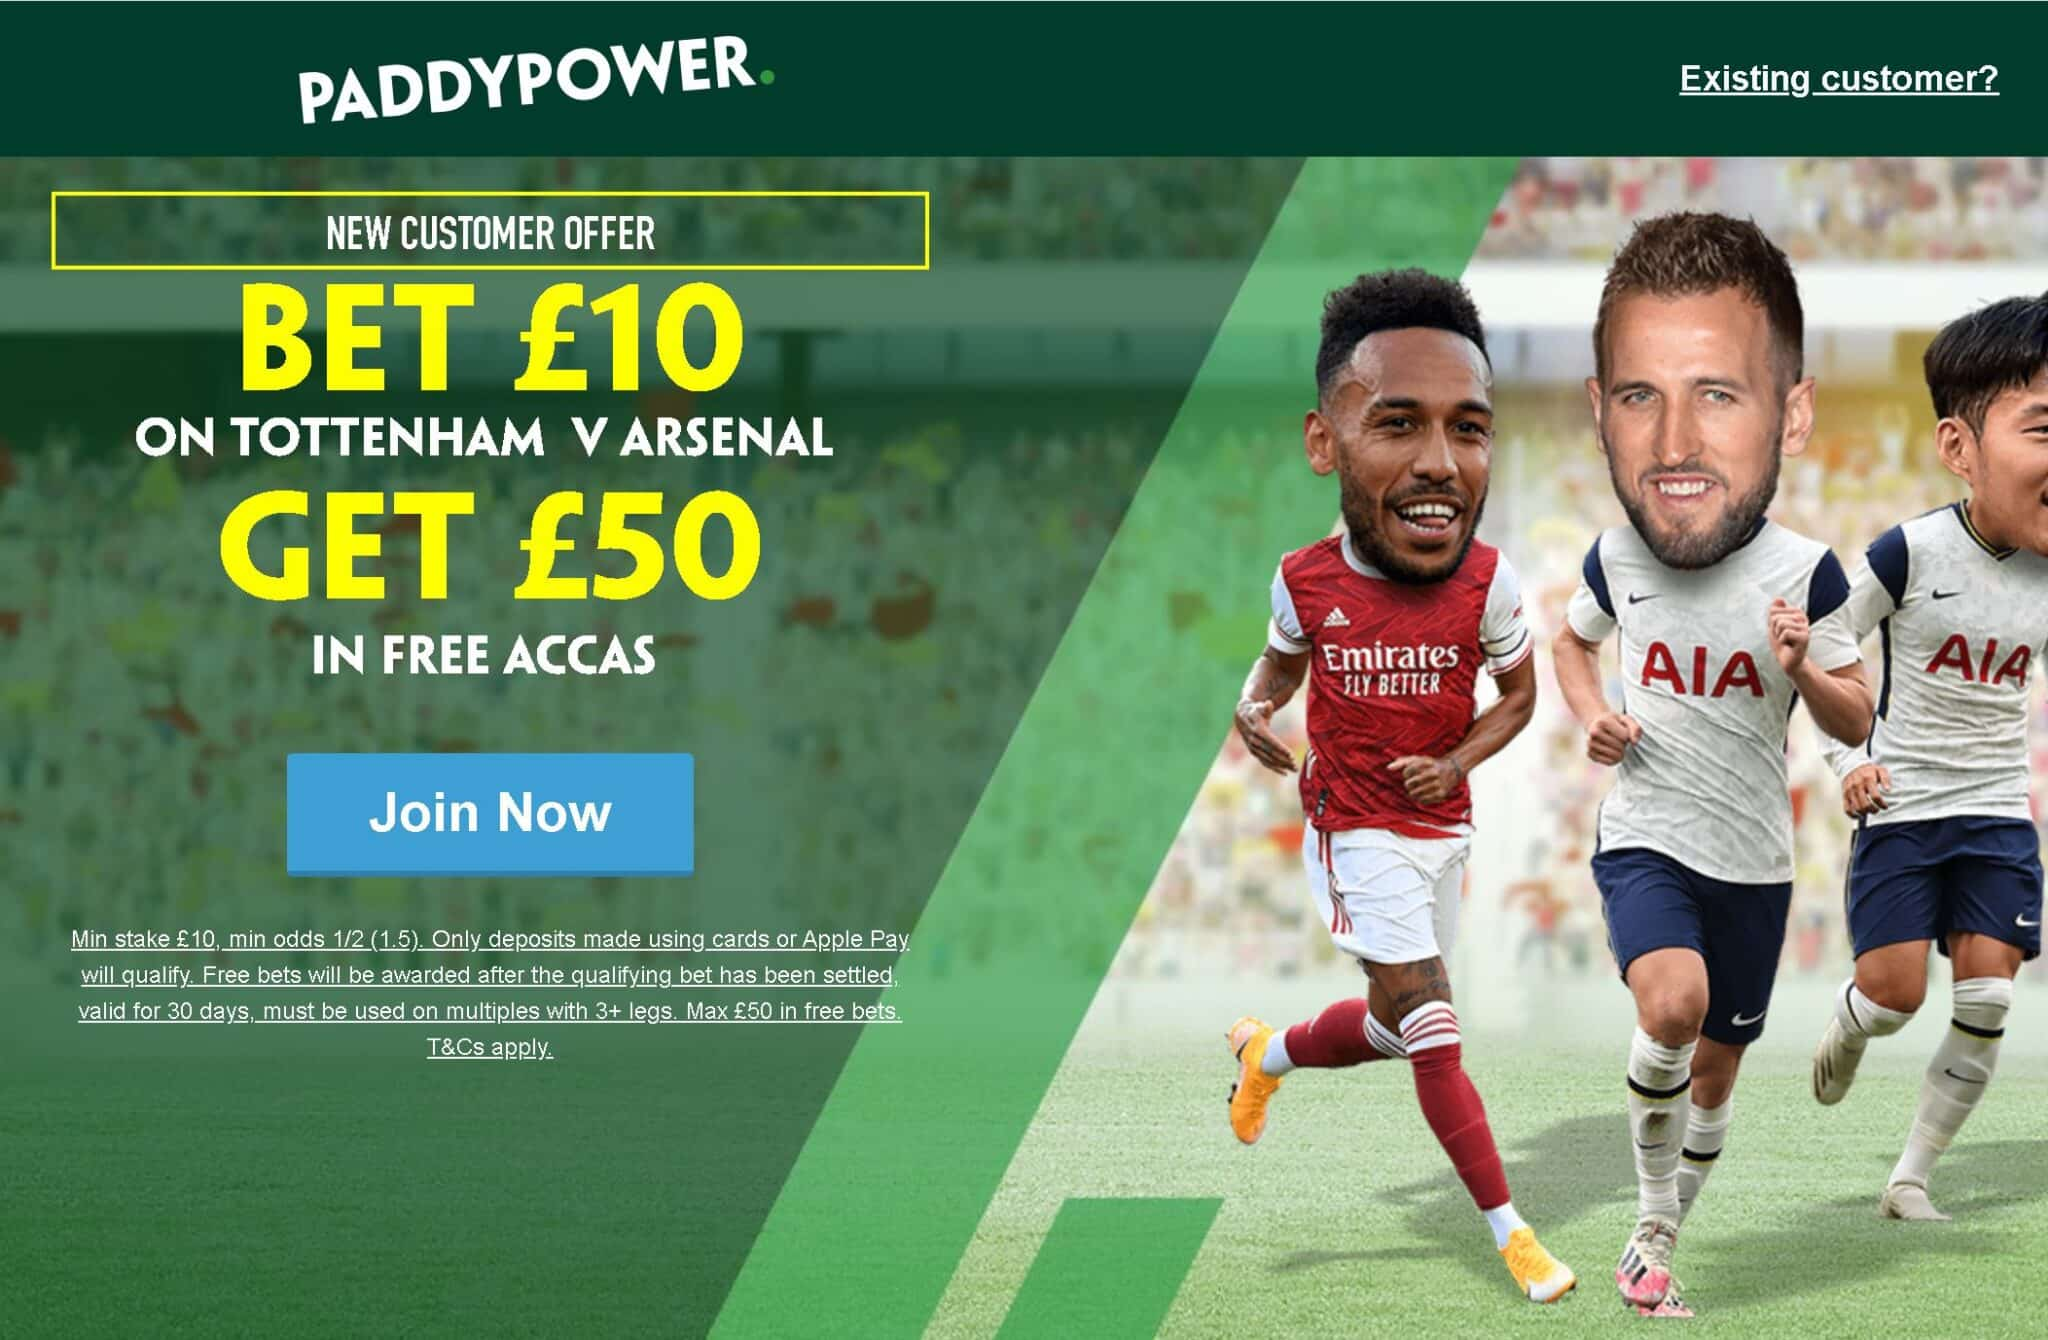 Spurs v Arsenal free bets